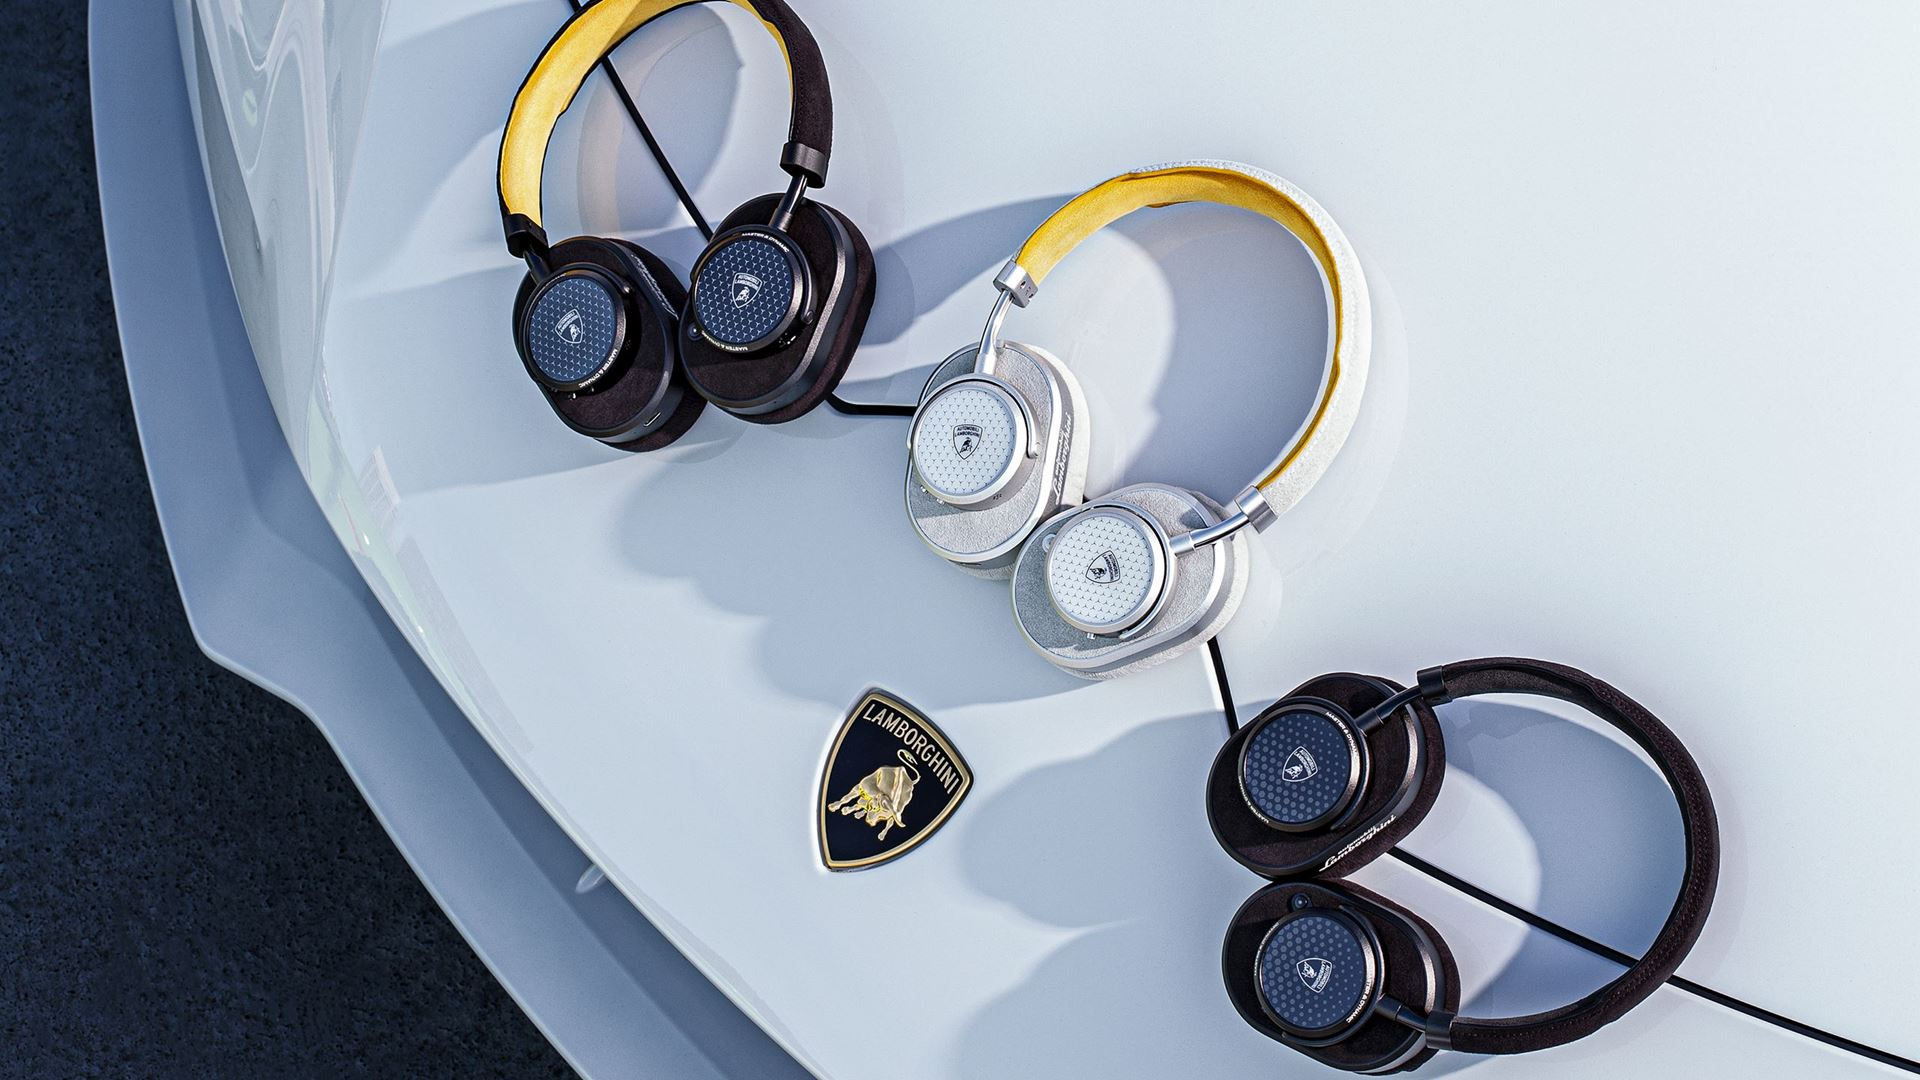 Automobili Lamborghini partners with Master & Dynamic on new headphones and earphones collection - Image 7